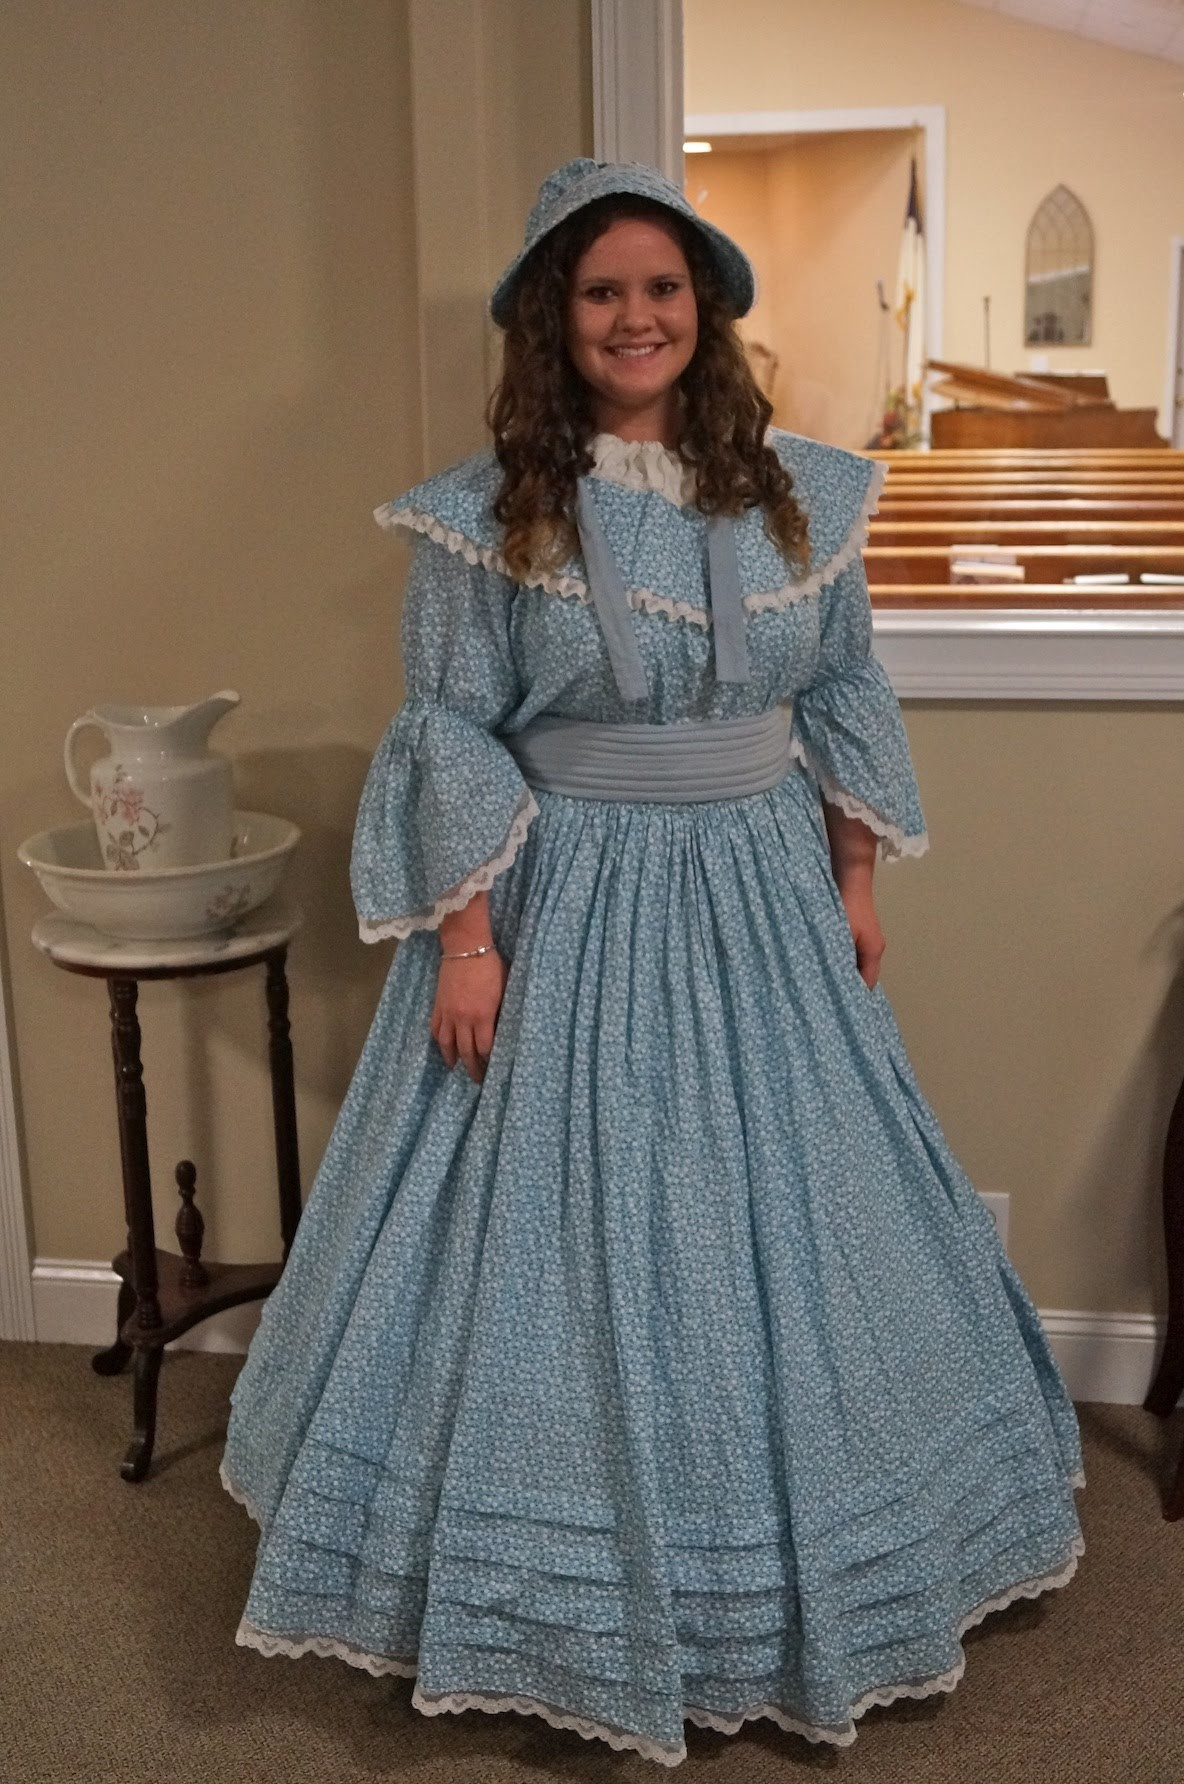 How I used a Pillowcase to Transform Dress and Hat